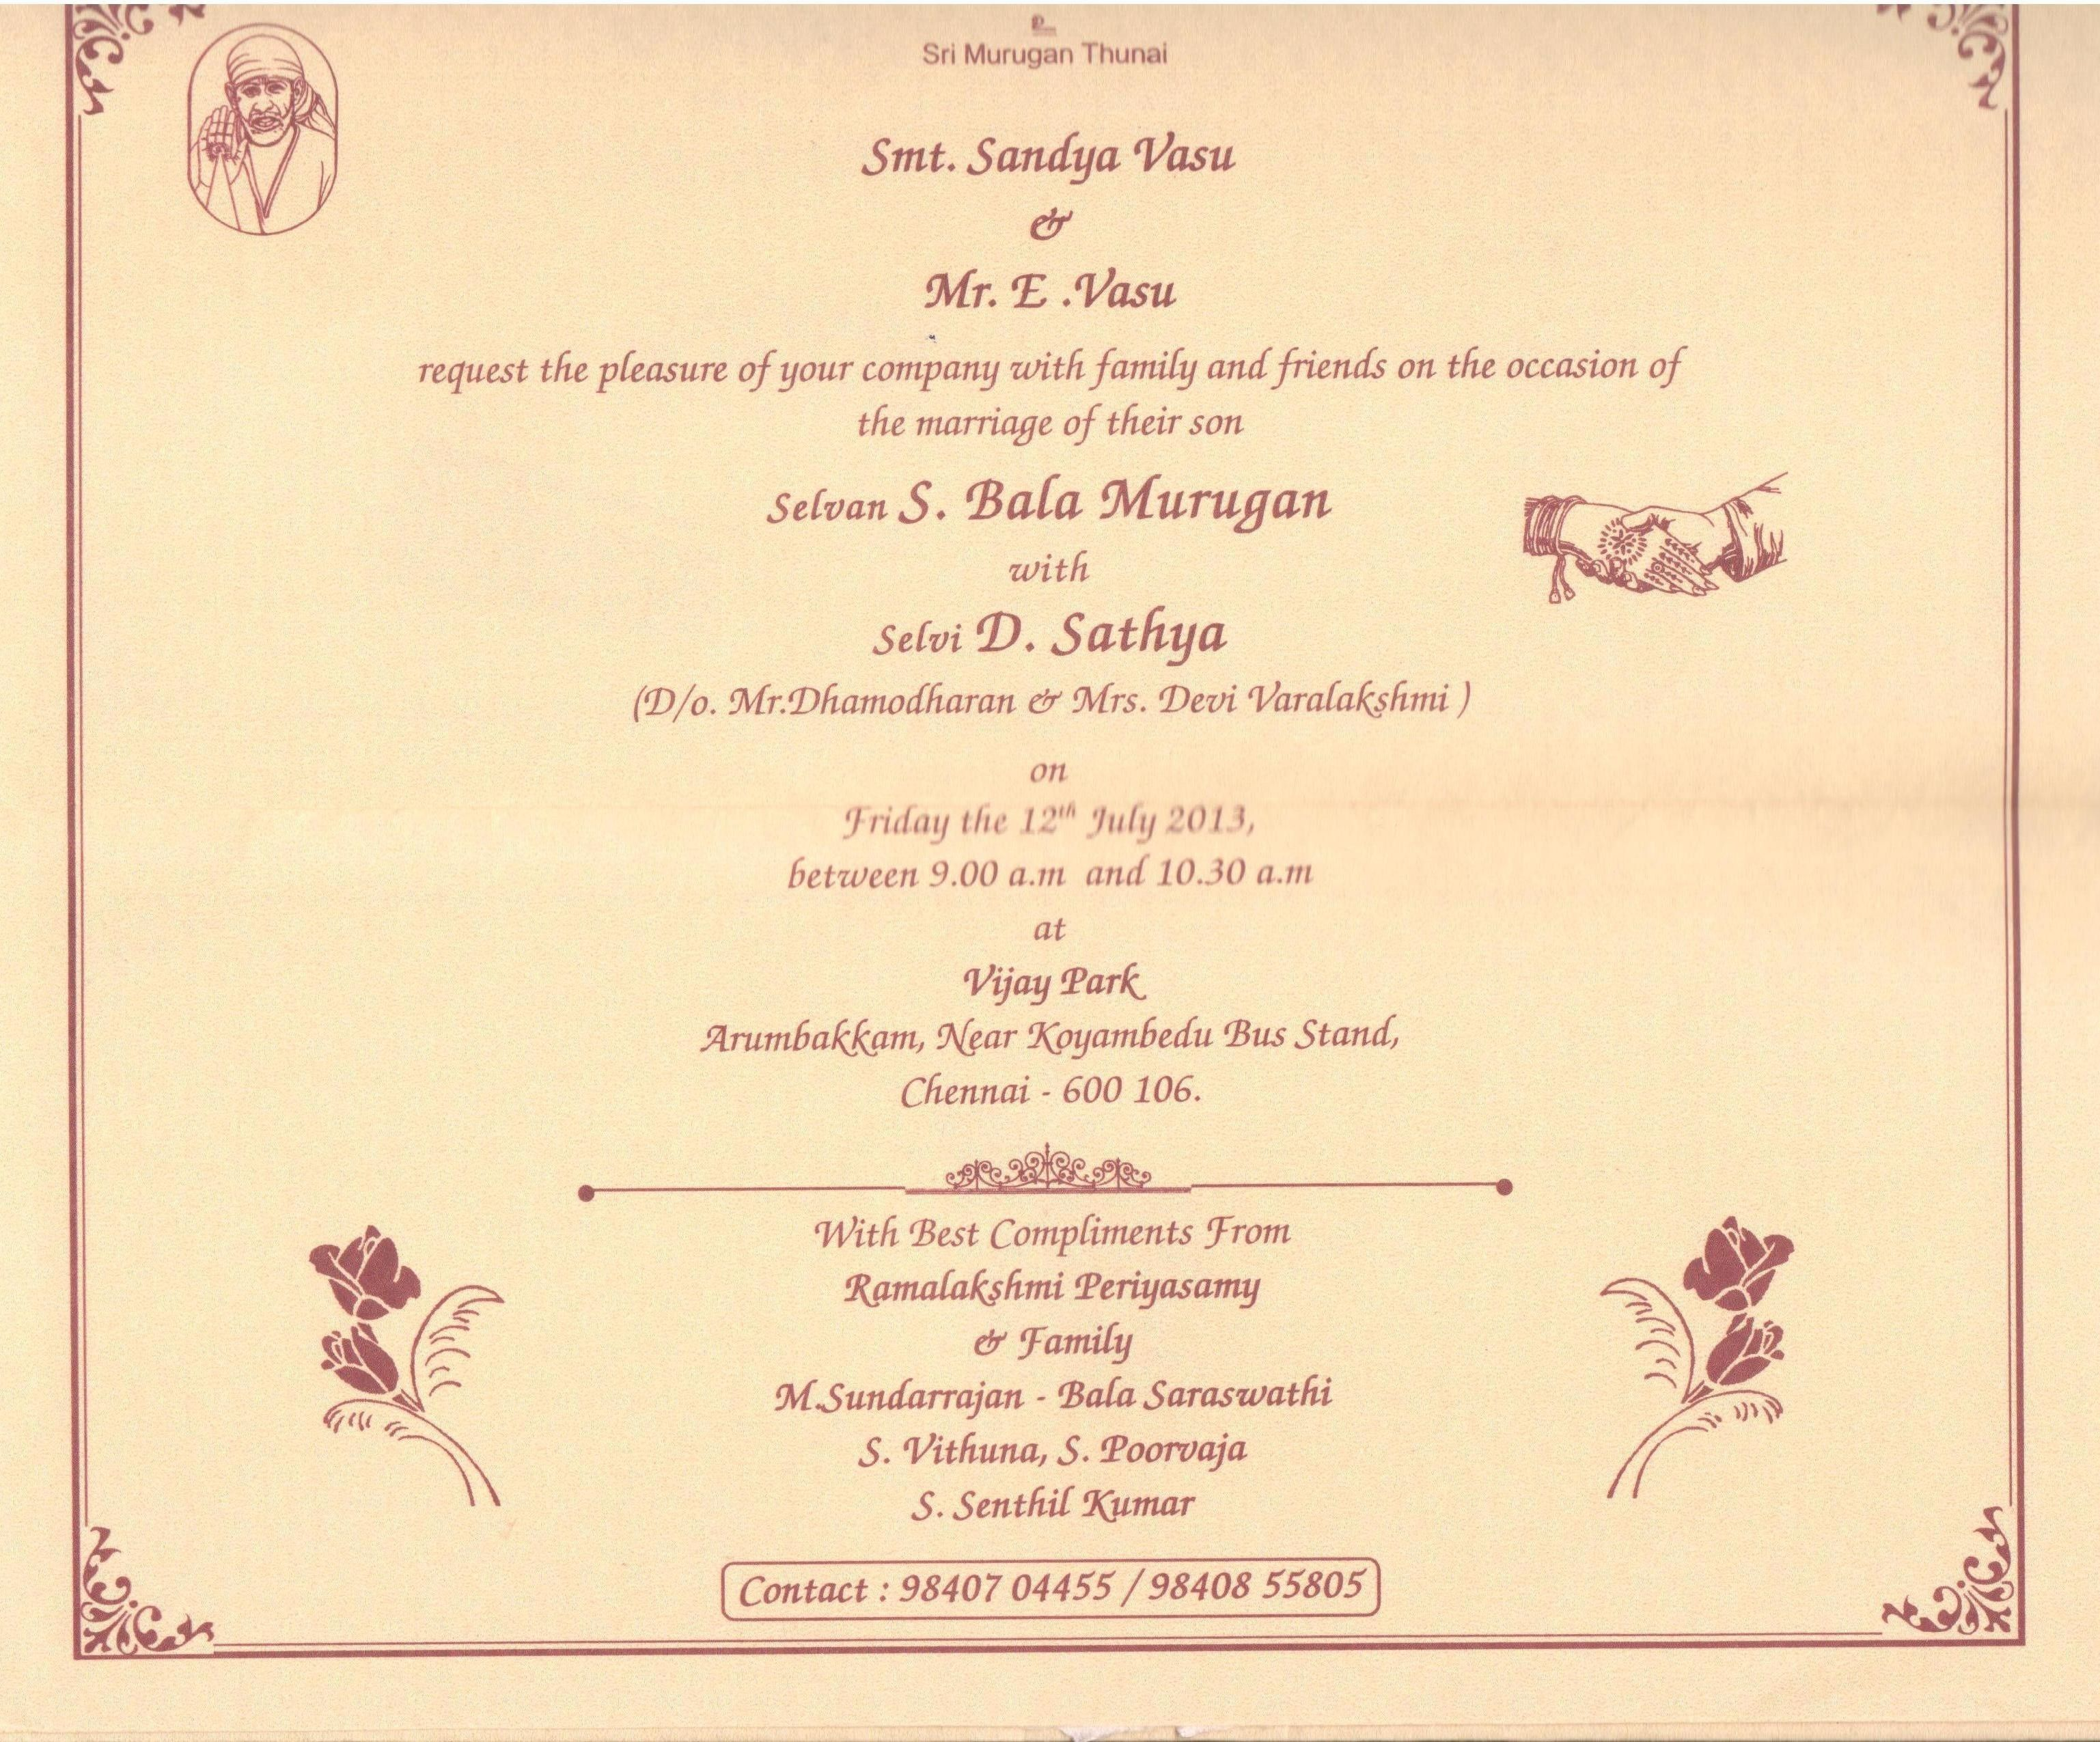 Hindu Wedding Card Content In English In 2020 Wedding Card